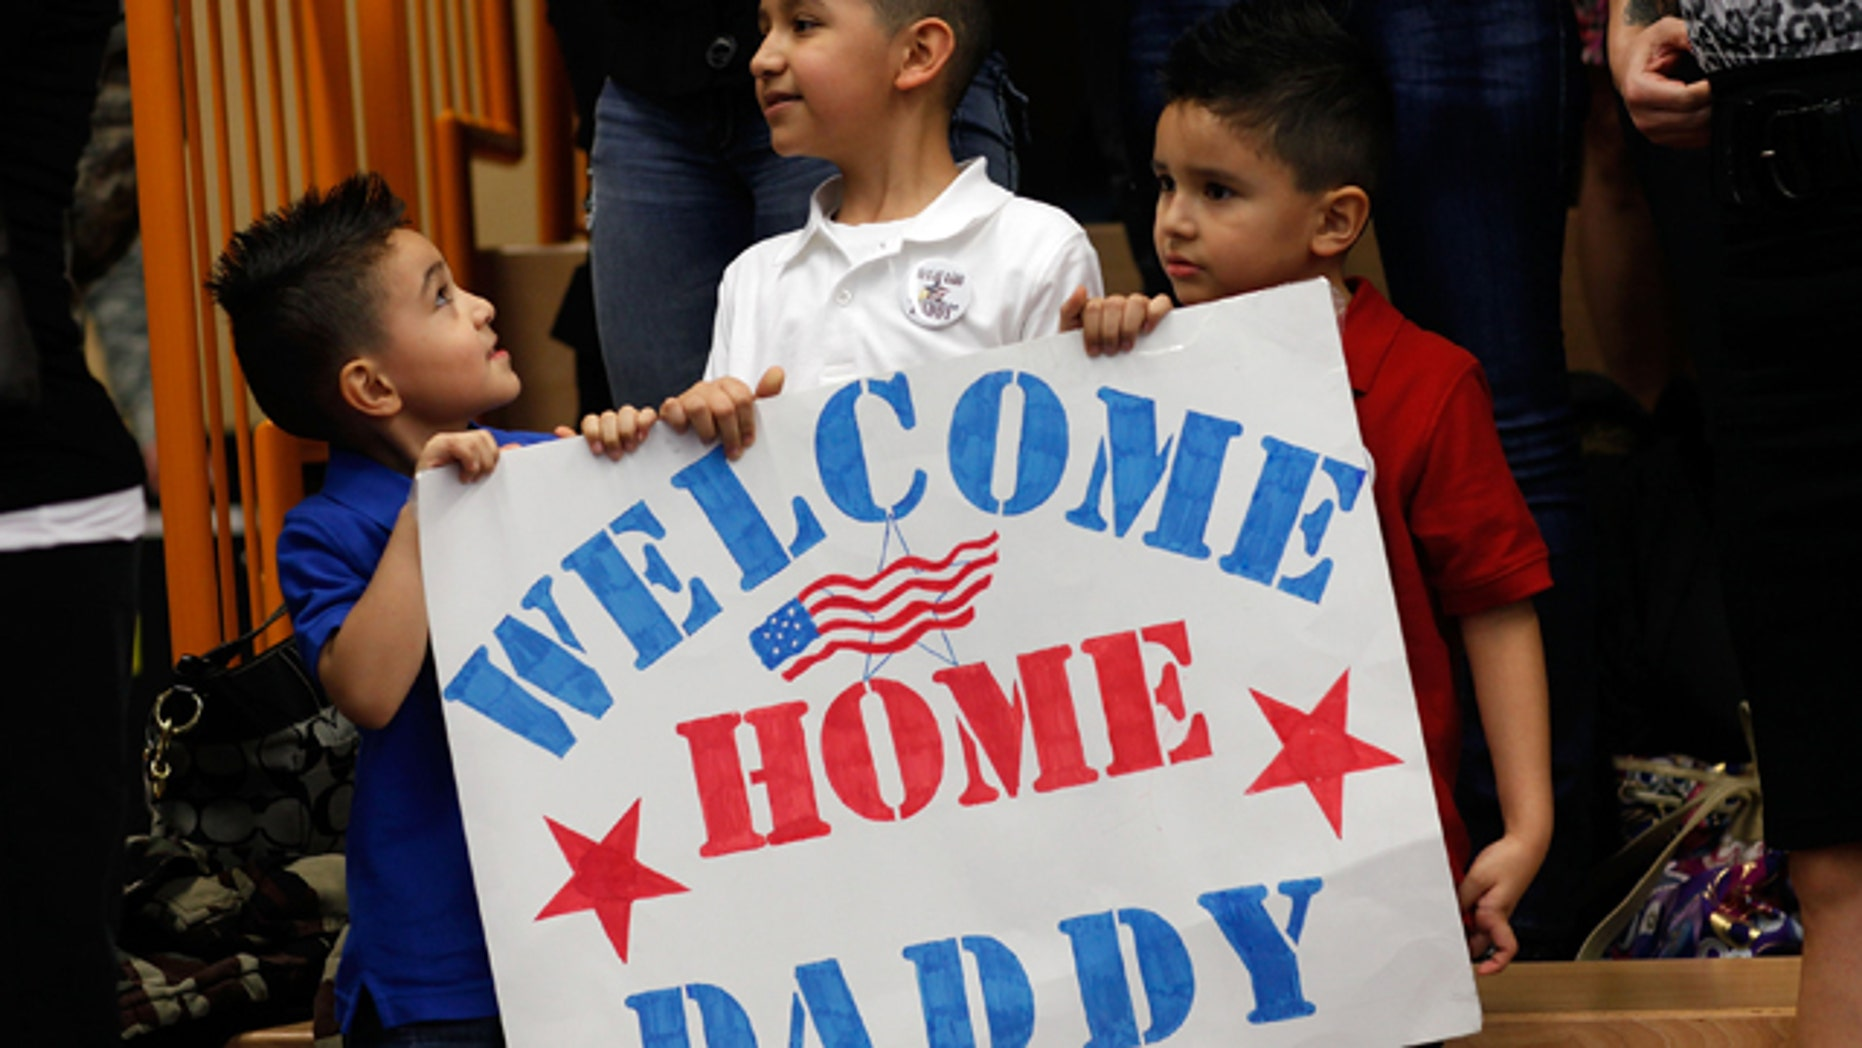 Family members wait for their loved ones of the 170th U.S. Army Infantry Brigade upon the troops' return from Afghanistan at U.S. Army Garrison Baumholder on January 28, 2012 in Baumholder, Germany. (Photo by Ralph Orlowski/Getty Images)